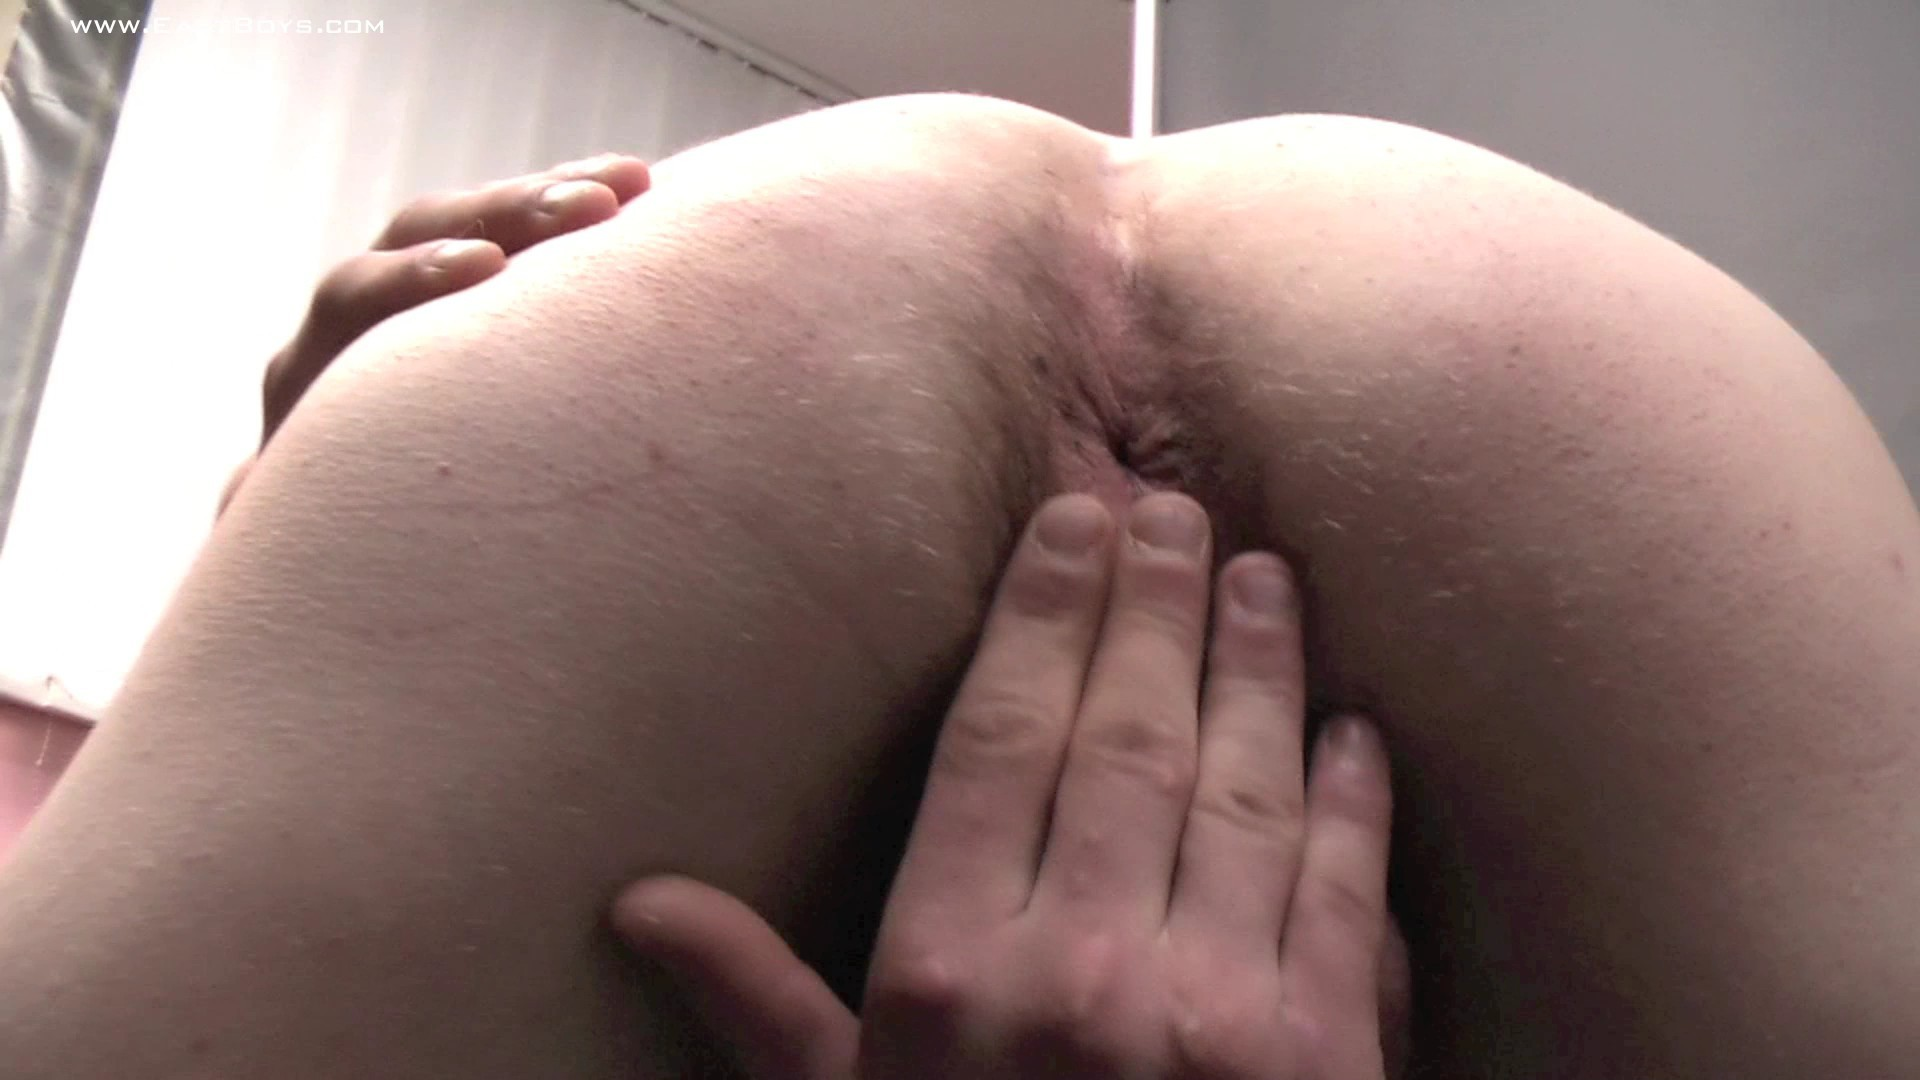 Free gay porn movie red hair tiny penis 2